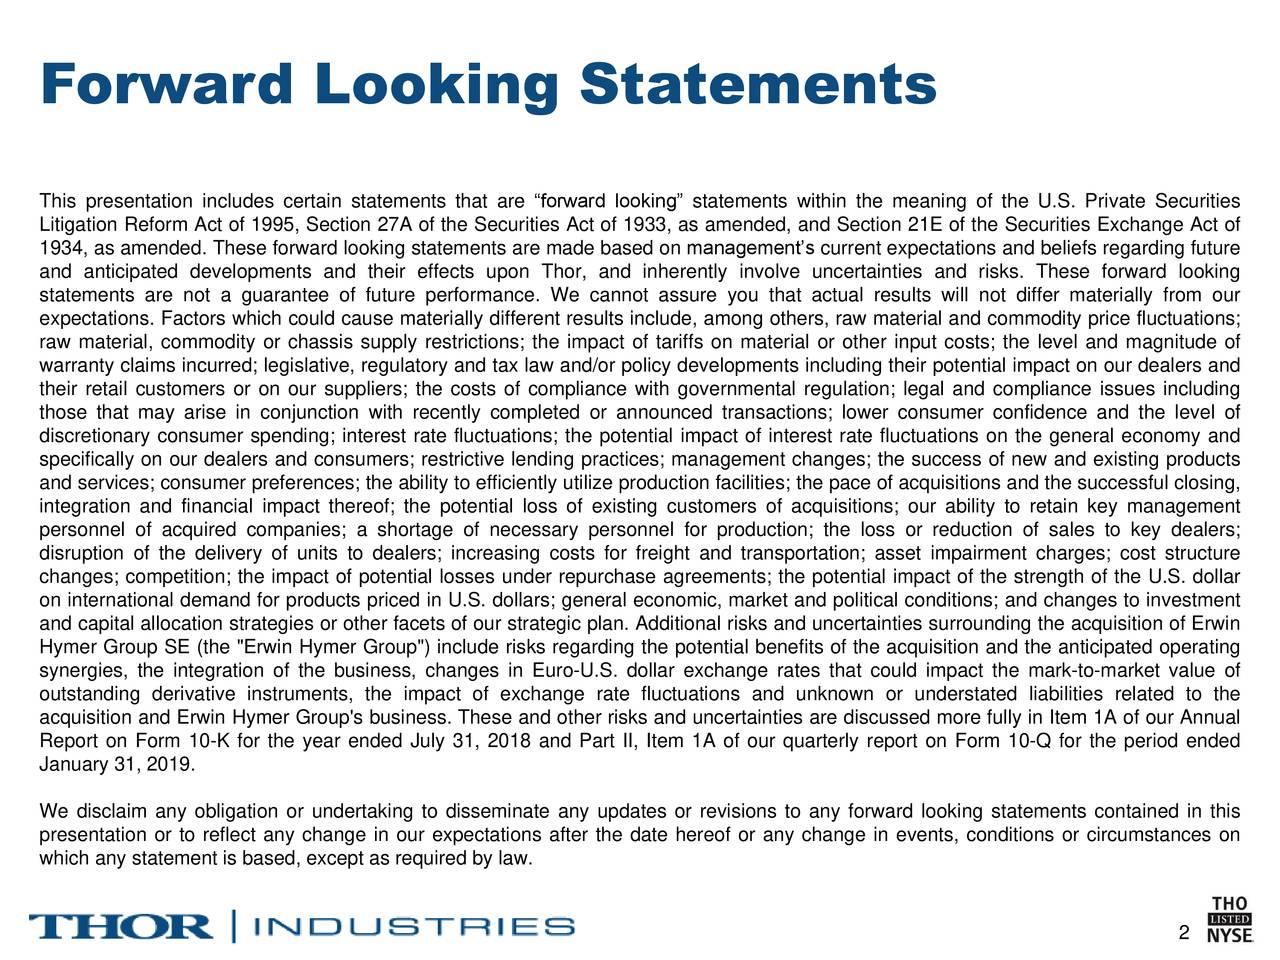 "This presentation includes certain statements that are ""forward looking"" statements within the meaning of the U.S. Private Securities Litigation Reform Act of 1995, Section 27A of the Securities Act of 1933, as amended, and Section 21E of the Securities Exchange Act of 1934, as amended. These forward looking statements are made based on management's current expectations and beliefs regarding future and anticipated developments and their effects upon Thor, and inherently involve uncertainties and risks. These forward looking statements are not a guarantee of future performance. We cannot assure you that actual results will not differ materially from our expectations. Factors which could cause materially different results include, among others, raw material and commodity price fluctuations; raw material, commodity or chassis supply restrictions; the impact of tariffs on material or other input costs; the level and magnitude of warranty claims incurred; legislative, regulatory and tax law and/or policy developments including their potential impact on our dealers and their retail customers or on our suppliers; the costs of compliance with governmental regulation; legal and compliance issues including those that may arise in conjunction with recently completed or announced transactions; lower consumer confidence and the level of discretionary consumer spending; interest rate fluctuations; the potential impact of interest rate fluctuations on the general economy and specifically on our dealers and consumers; restrictive lending practices; management changes; the success of new and existing products and services; consumer preferences; the ability to efficiently utilize production facilities; the pace of acquisitions and the successful closing, integration and financial impact thereof; the potential loss of existing customers of acquisitions; our ability to retain key management personnel of acquired companies; a shortage of necessary personnel for production; the loss or reduction of sales to key dealers; disruption of the delivery of units to dealers; increasing costs for freight and transportation; asset impairment charges; cost structure changes; competition; the impact of potential losses under repurchase agreements; the potential impact of the strength of the U.S. dollar on international demand for products priced in U.S. dollars; general economic, market and political conditions; and changes to investment and capital allocation strategies or other facets of our strategic plan. Additional risks and uncertainties surrounding the acquisition of Erwin Hymer Group SE (the ""Erwin Hymer Group"") include risks regarding the potential benefits of the acquisition and the anticipated operating synergies, the integration of the business, changes in Euro-U.S. dollar exchange rates that could impact the mark-to-market value of outstanding derivative instruments, the impact of exchange rate fluctuations and unknown or understated liabilities related to the acquisition and Erwin Hymer Group's business. These and other risks and uncertainties are discussed more fully in Item 1A of our Annual Report on Form 10-K for the year ended July 31, 2018 and Part II, Item 1A of our quarterly report on Form 10-Q for the period ended January 31, 2019. We disclaim any obligation or undertaking to disseminate any updates or revisions to any forward looking statements contained in this presentation or to reflect any change in our expectations after the date hereof or any change in events, conditions or circumstances on which any statement is based, except as required by law. 2"